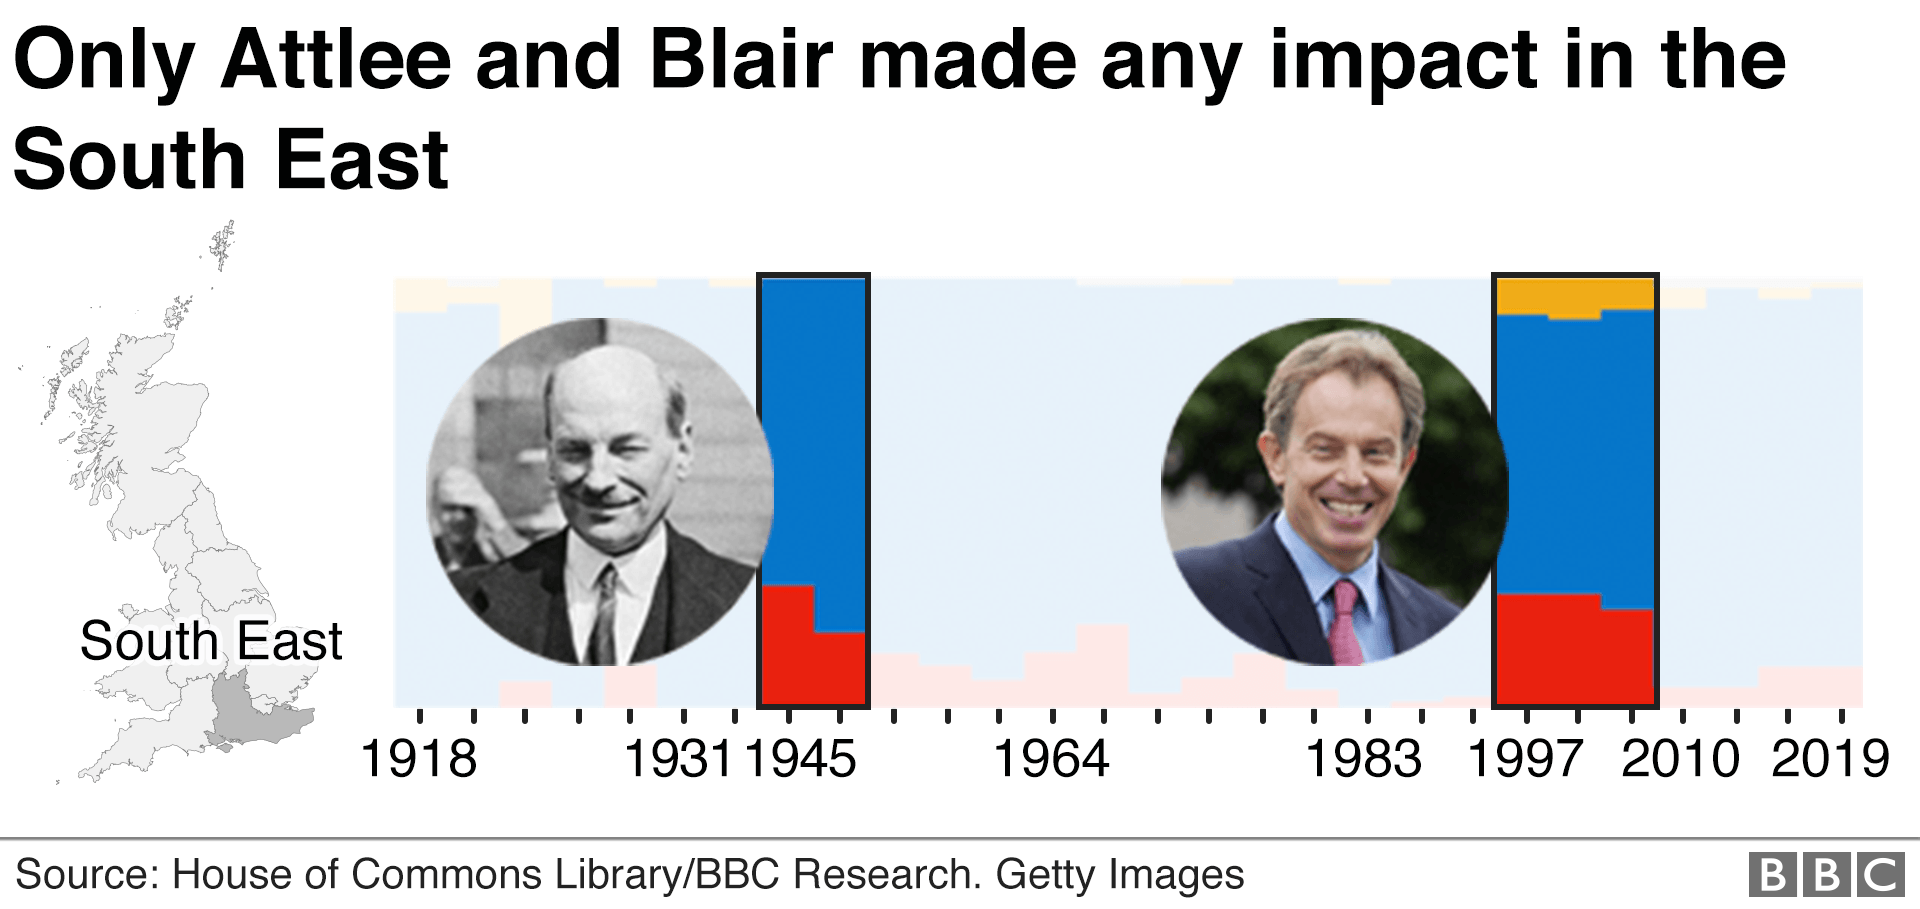 Chart showing results of Attlee and Blair elections